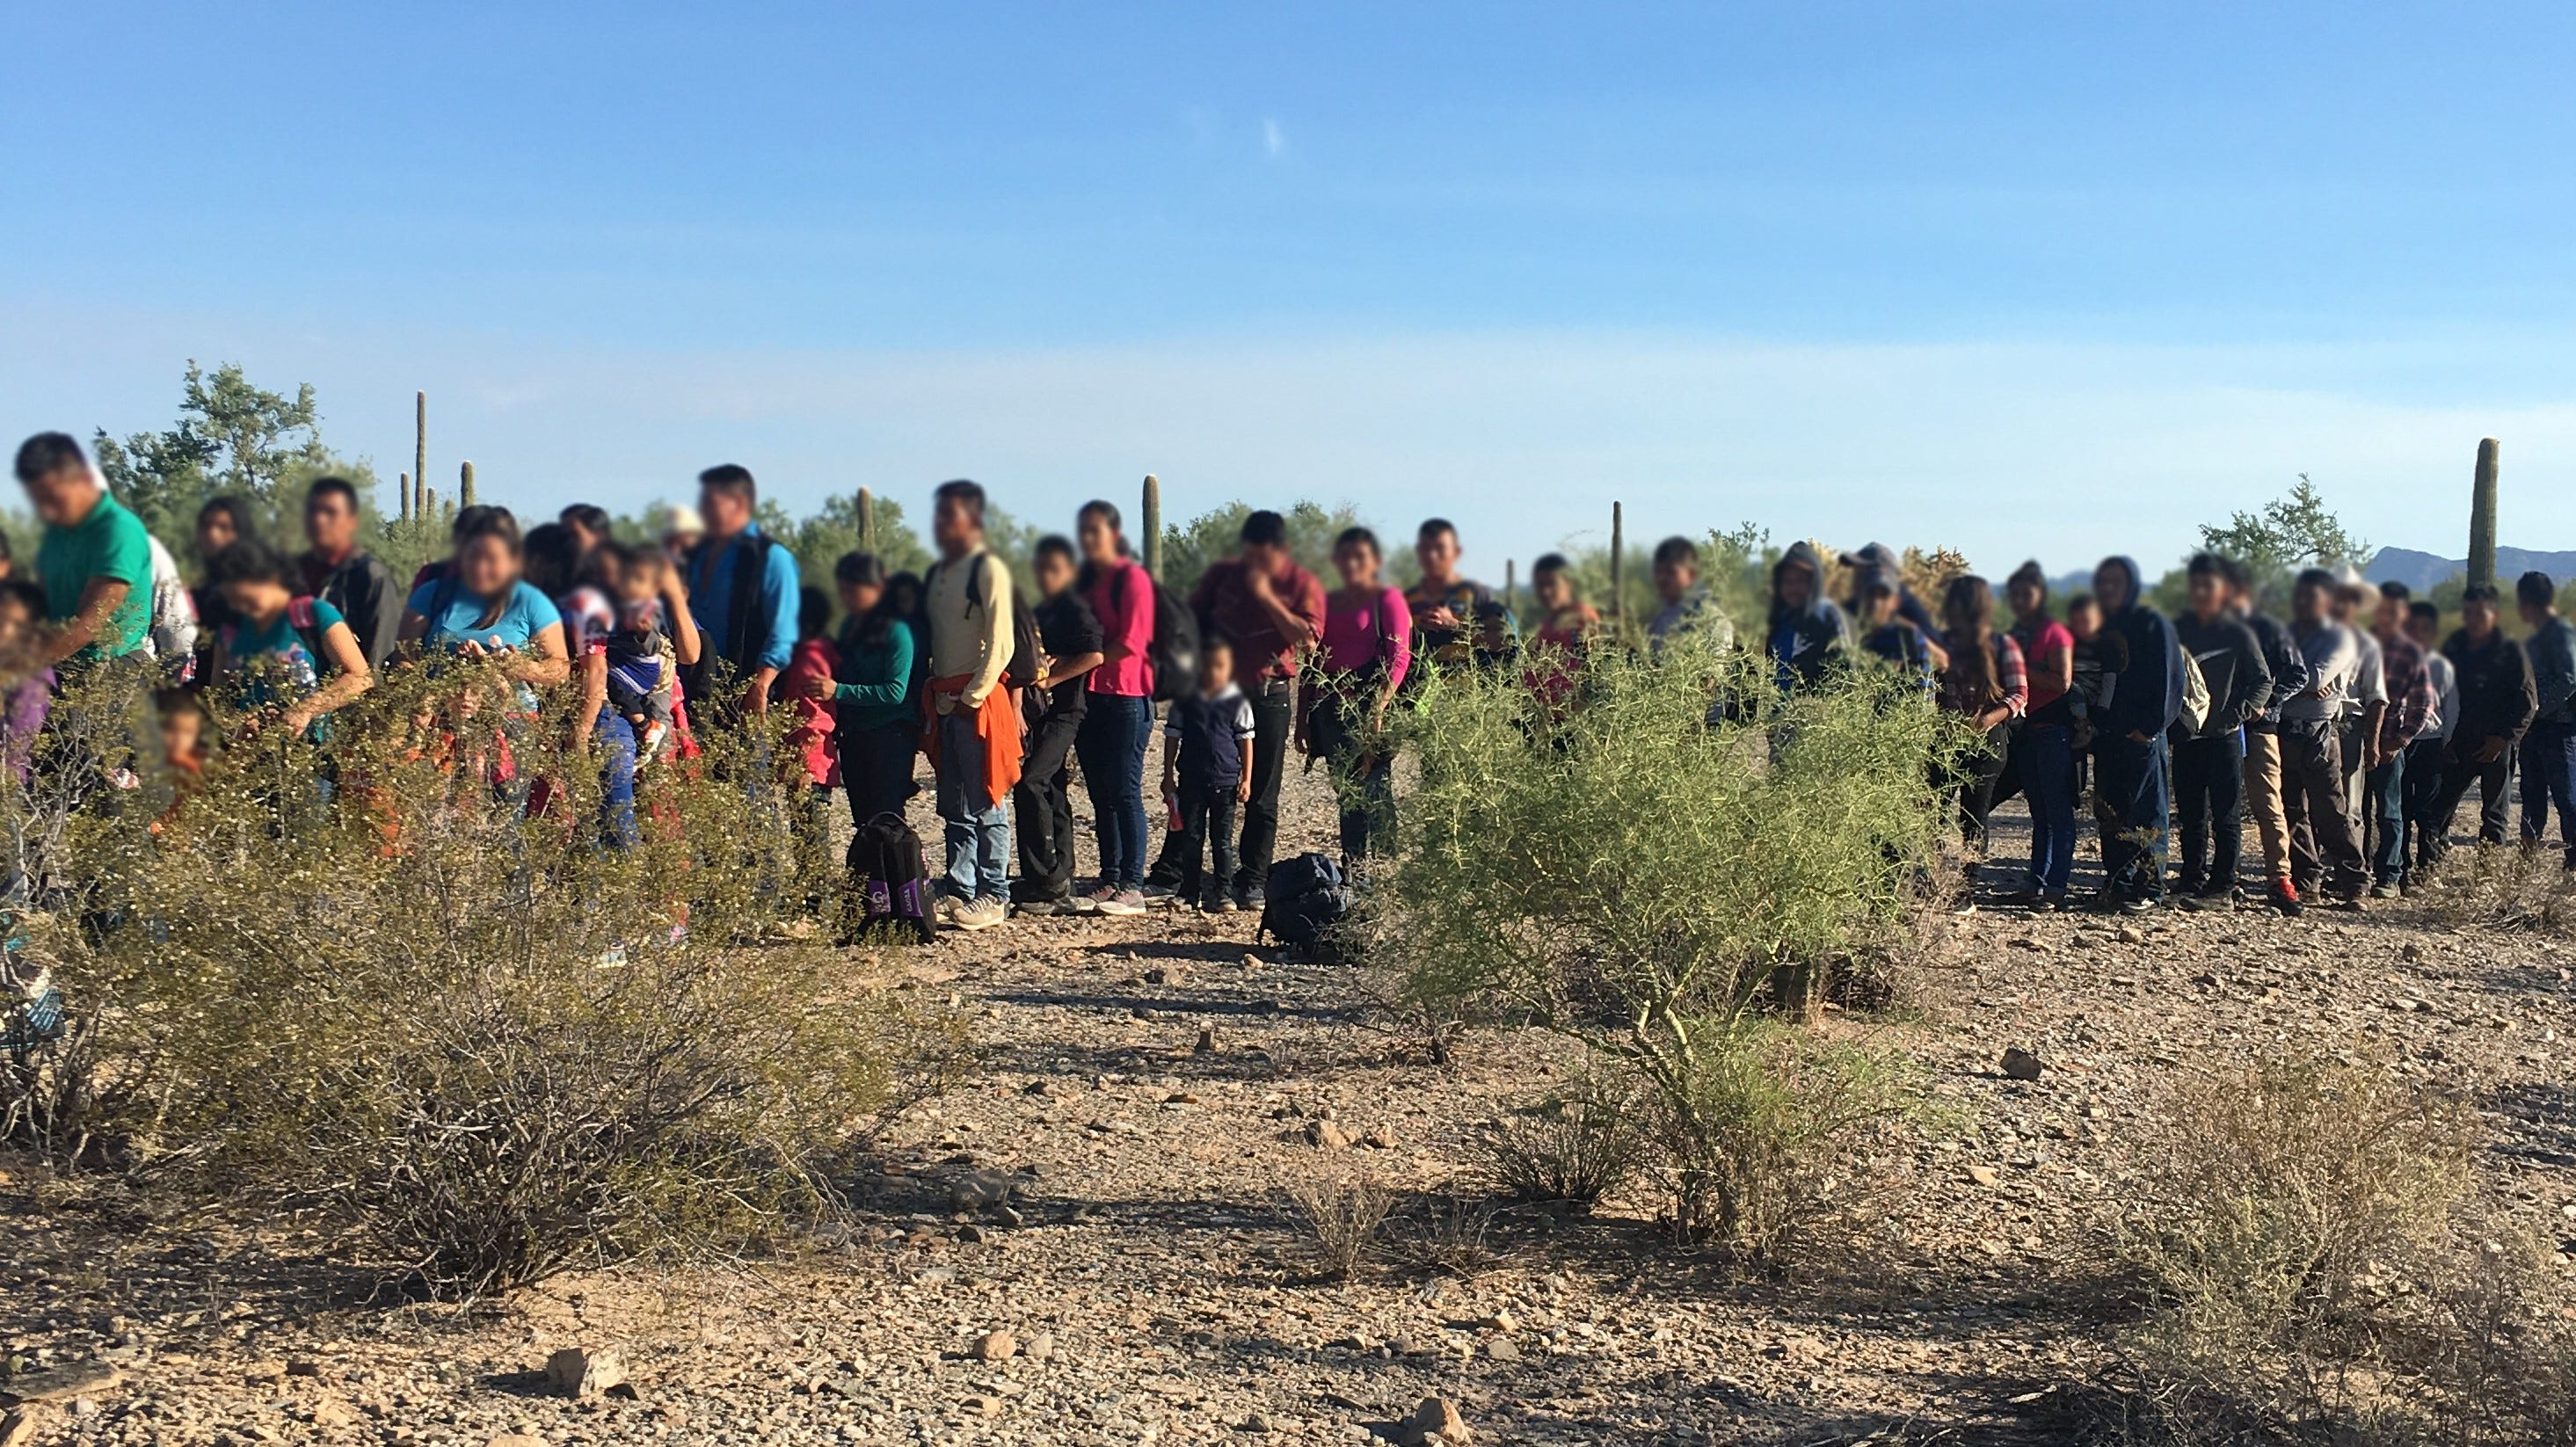 U.S. Border Patrol agents detain a group of 103 migrants near Lukeville